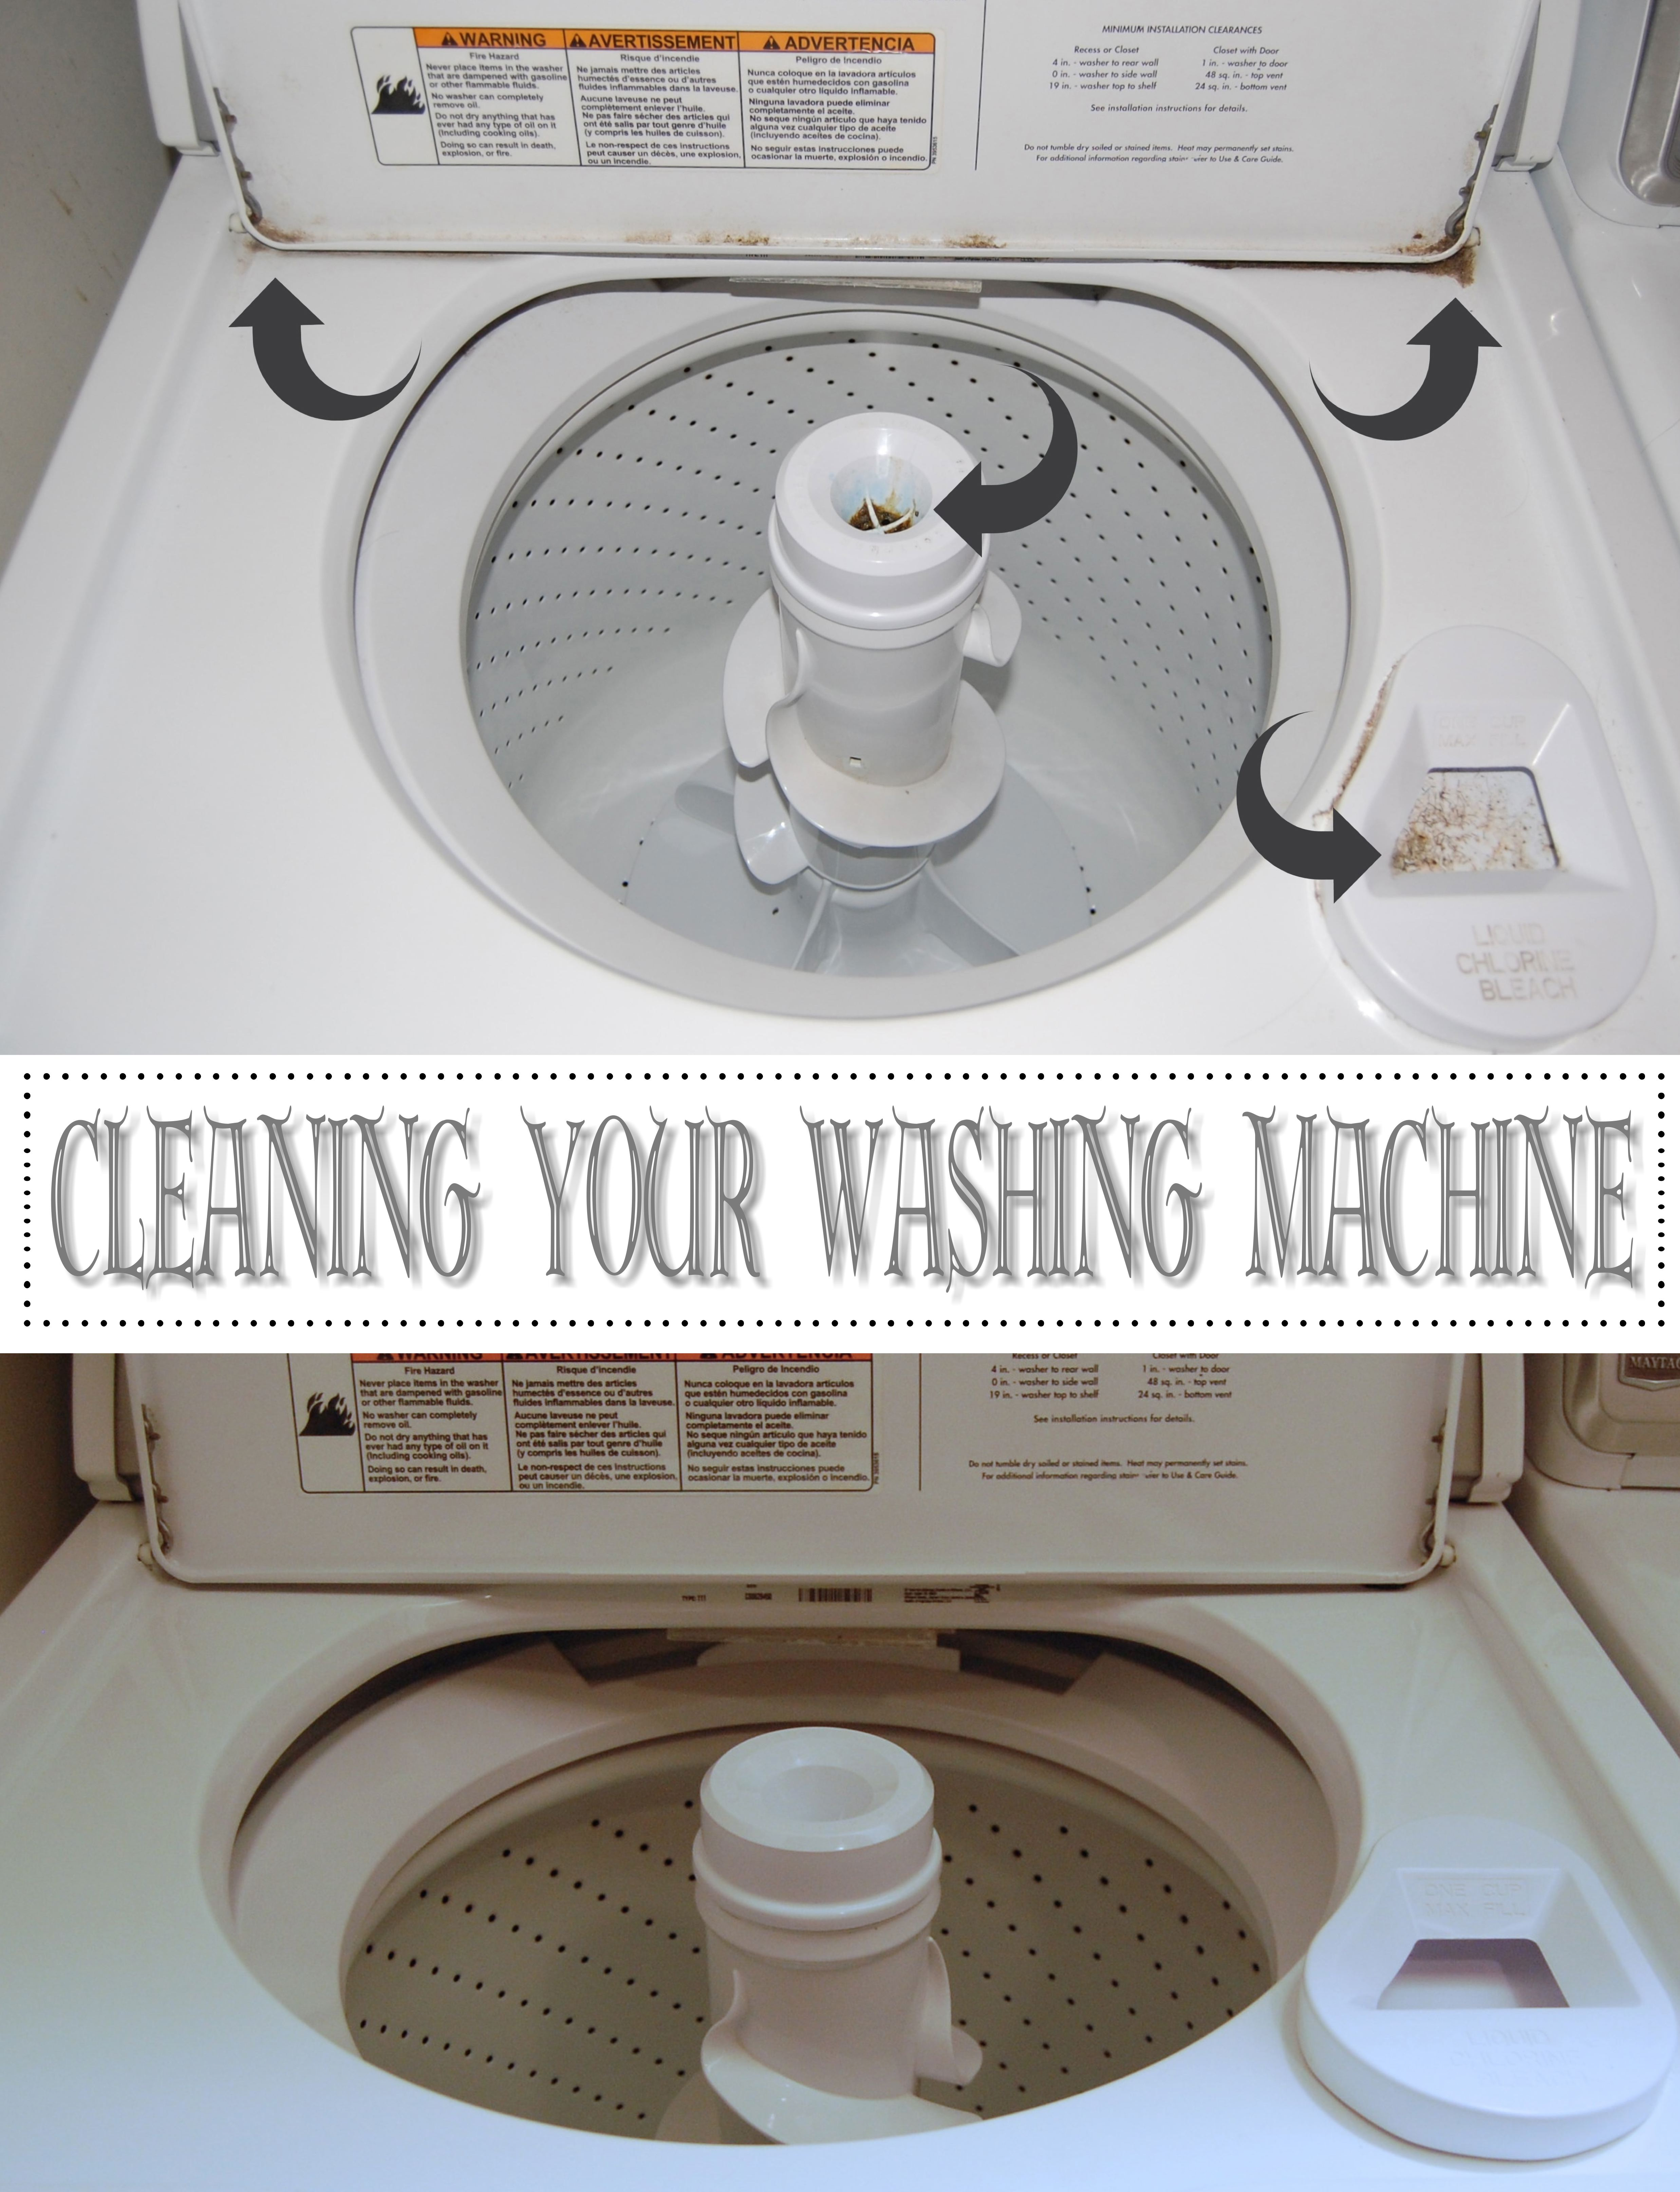 How To Clean Washing Machine Drain Pipe The top of the